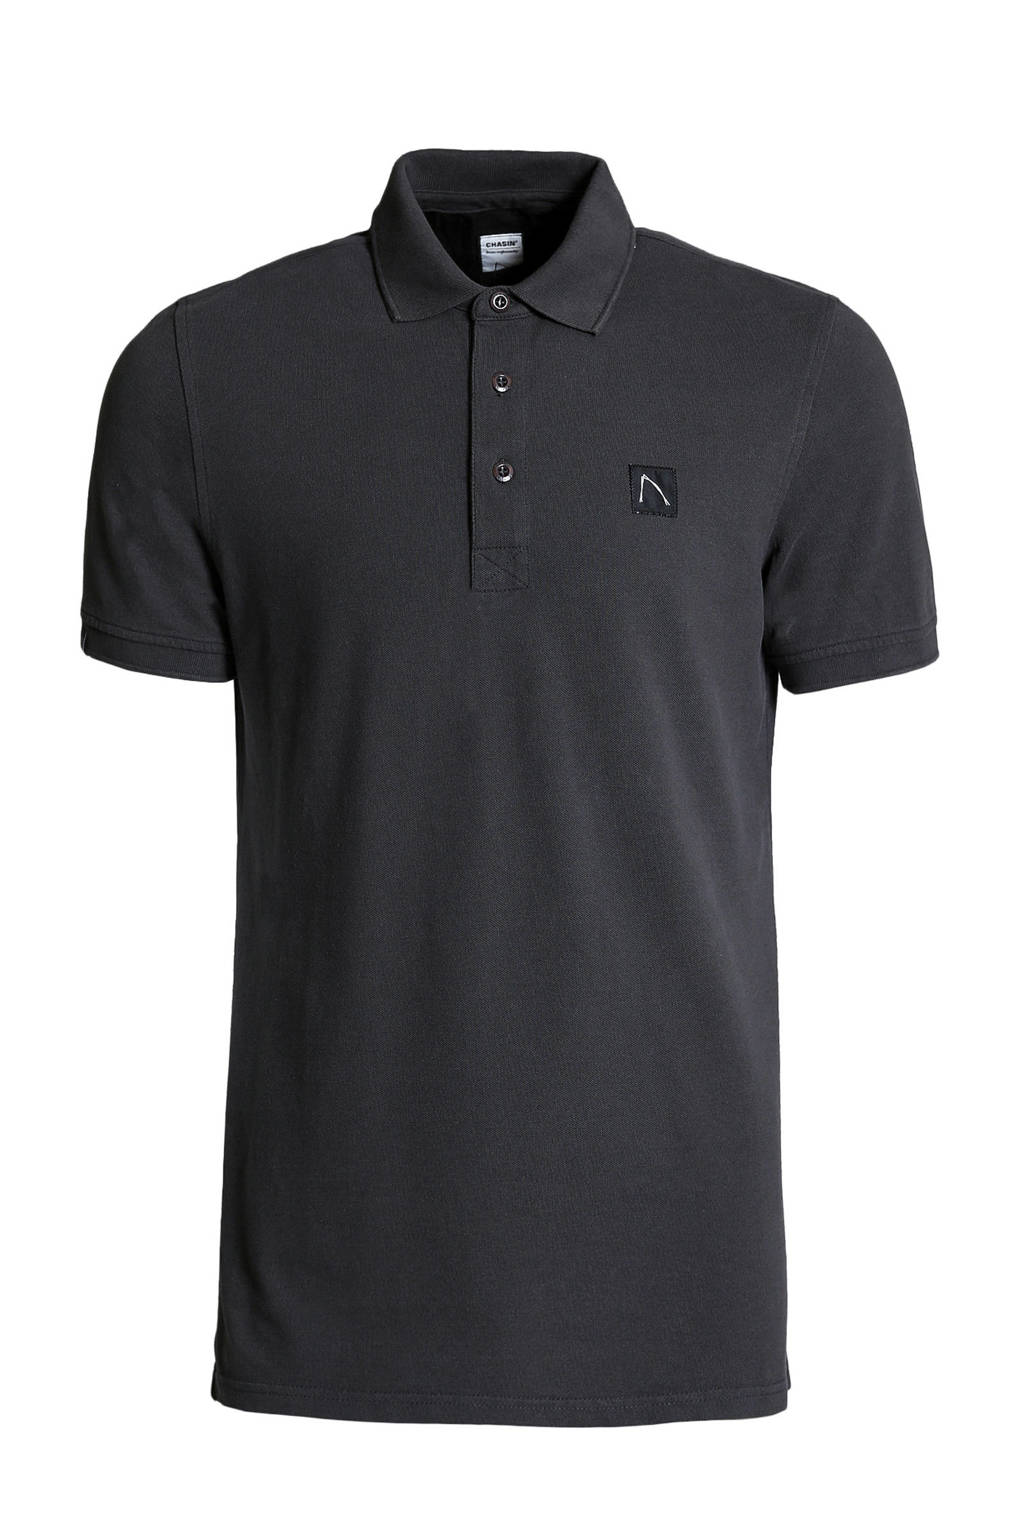 Chasin' regular fit polo antraciet, Antraciet